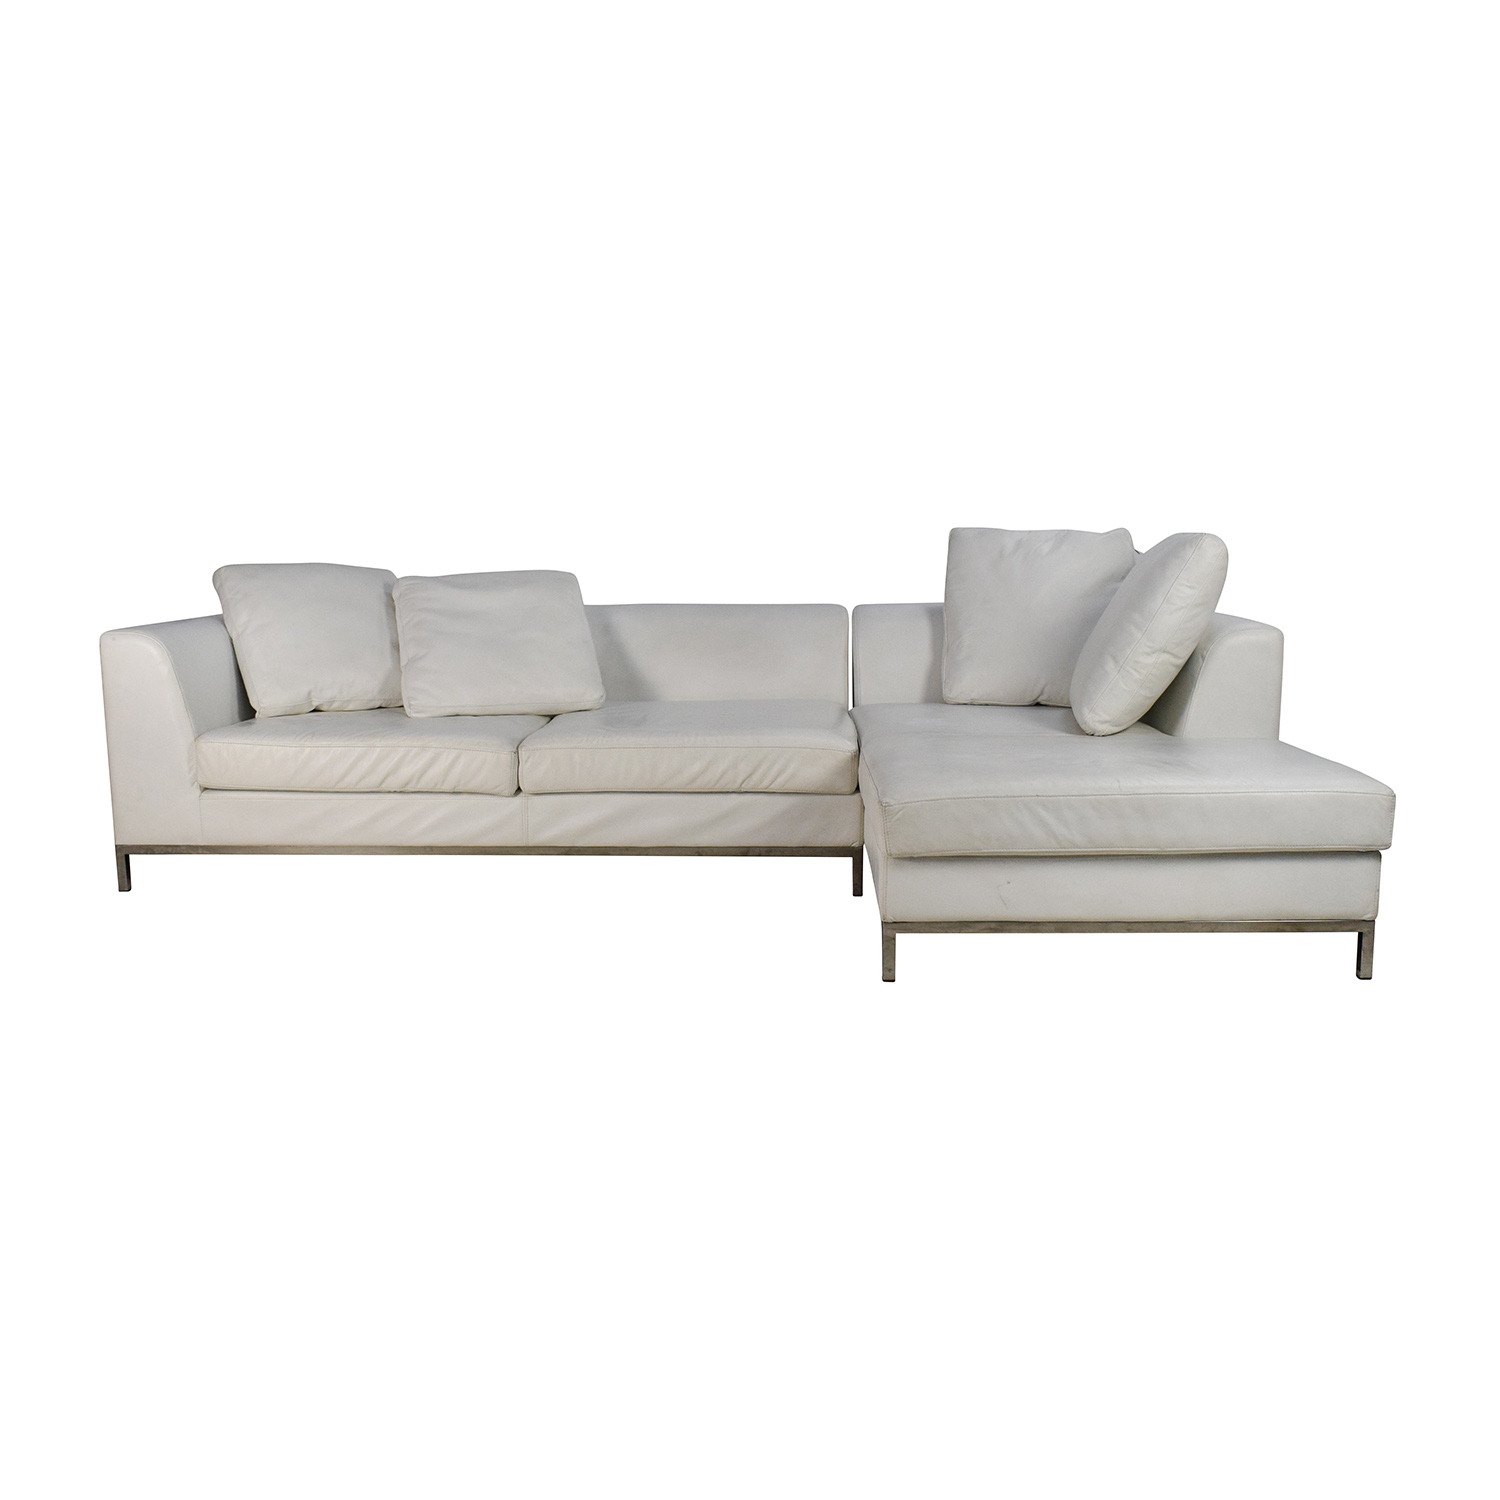 Furniture Village Guildford leather couch discoloration | furniture village guildford manager